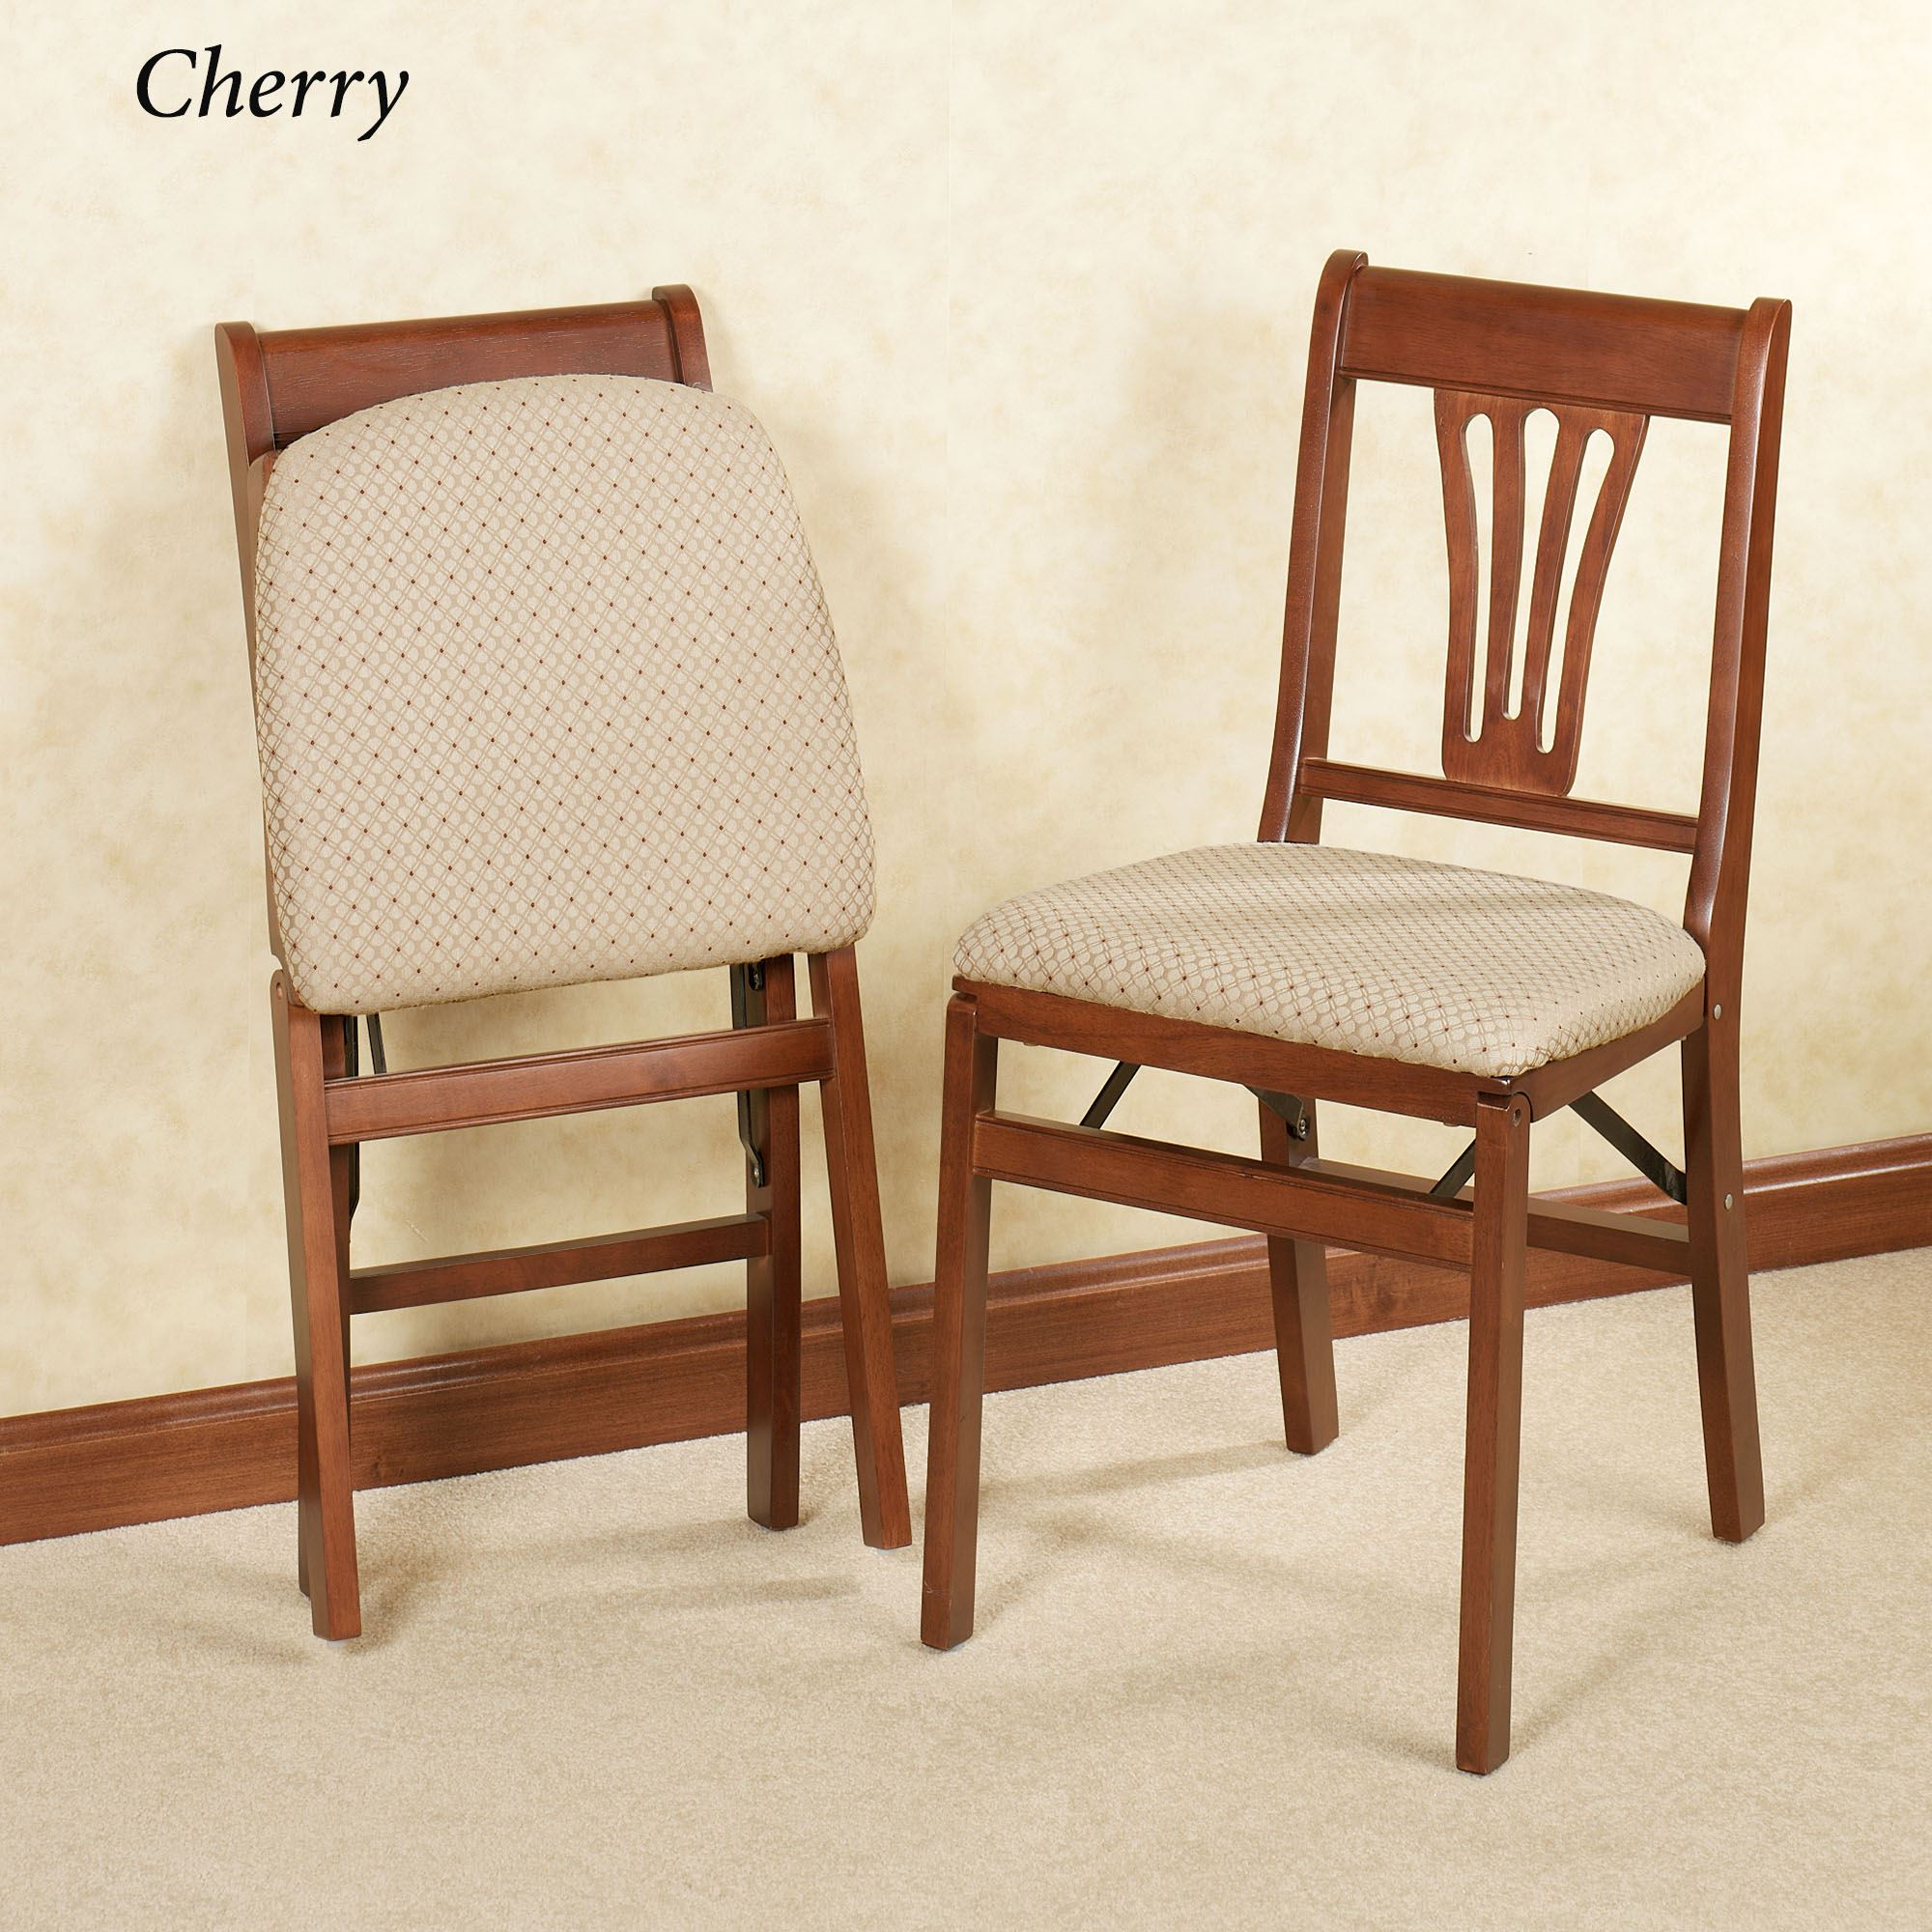 brown wooden folding chairs swivel leather chair french country pair play video